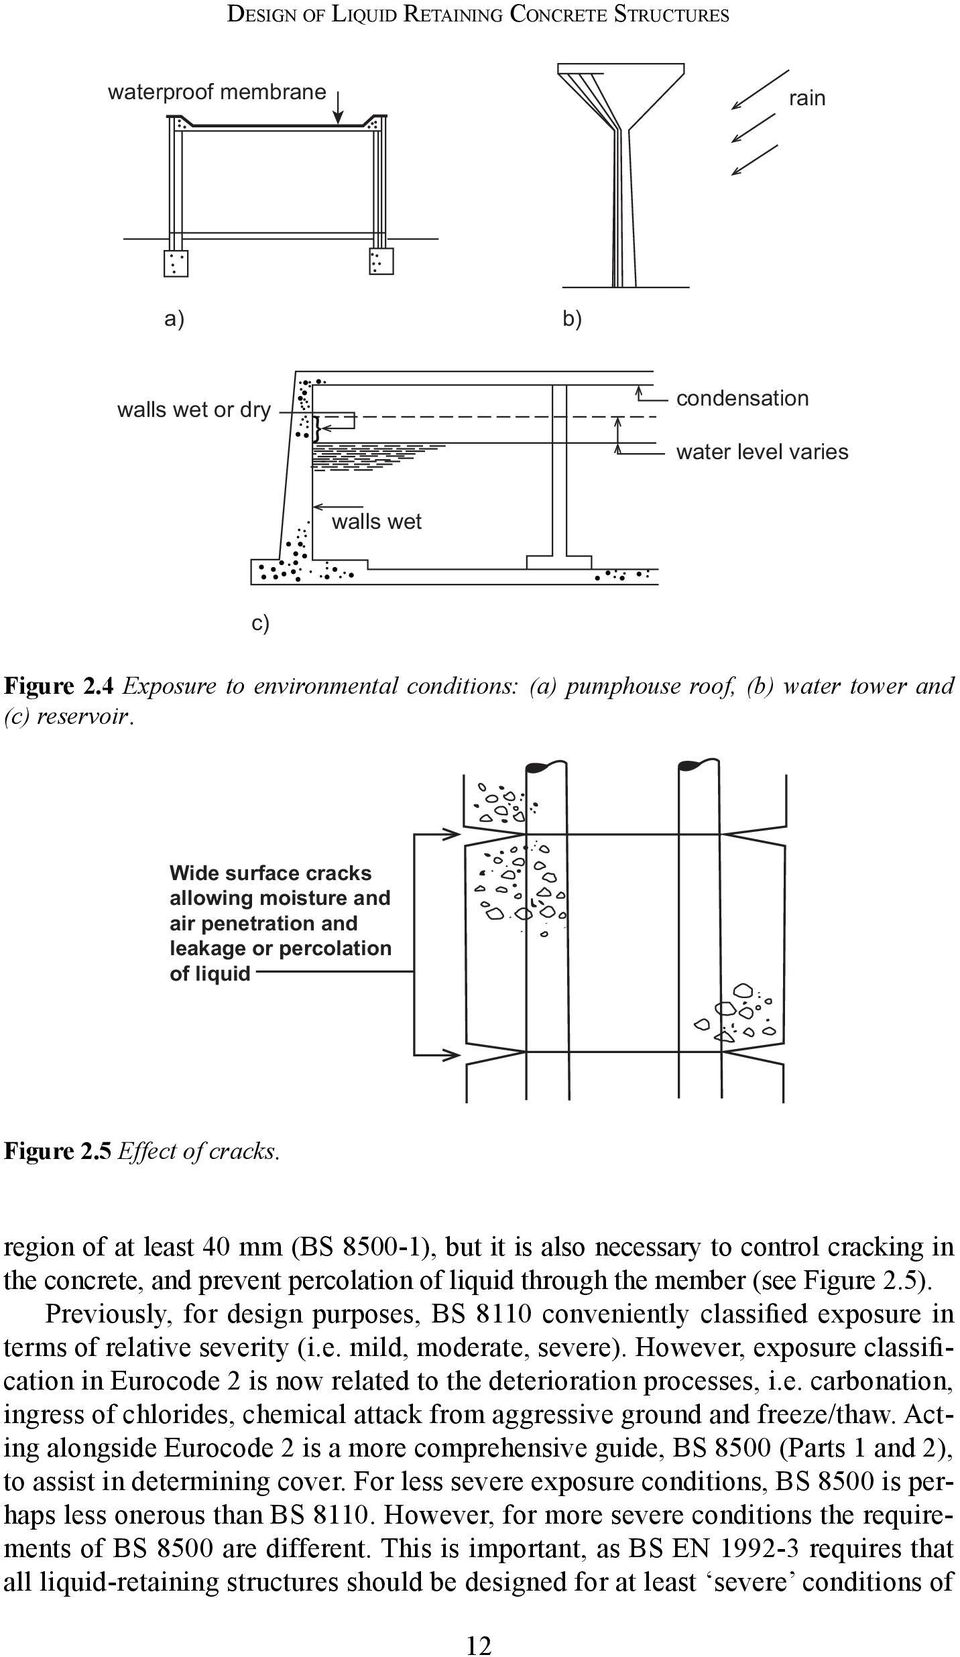 5 Effect of cracks. region of at least 40 mm (BS 8500-1), but it is also necessary to control cracking in the concrete, and prevent percolation of liquid through the member (see Figure 2.5).